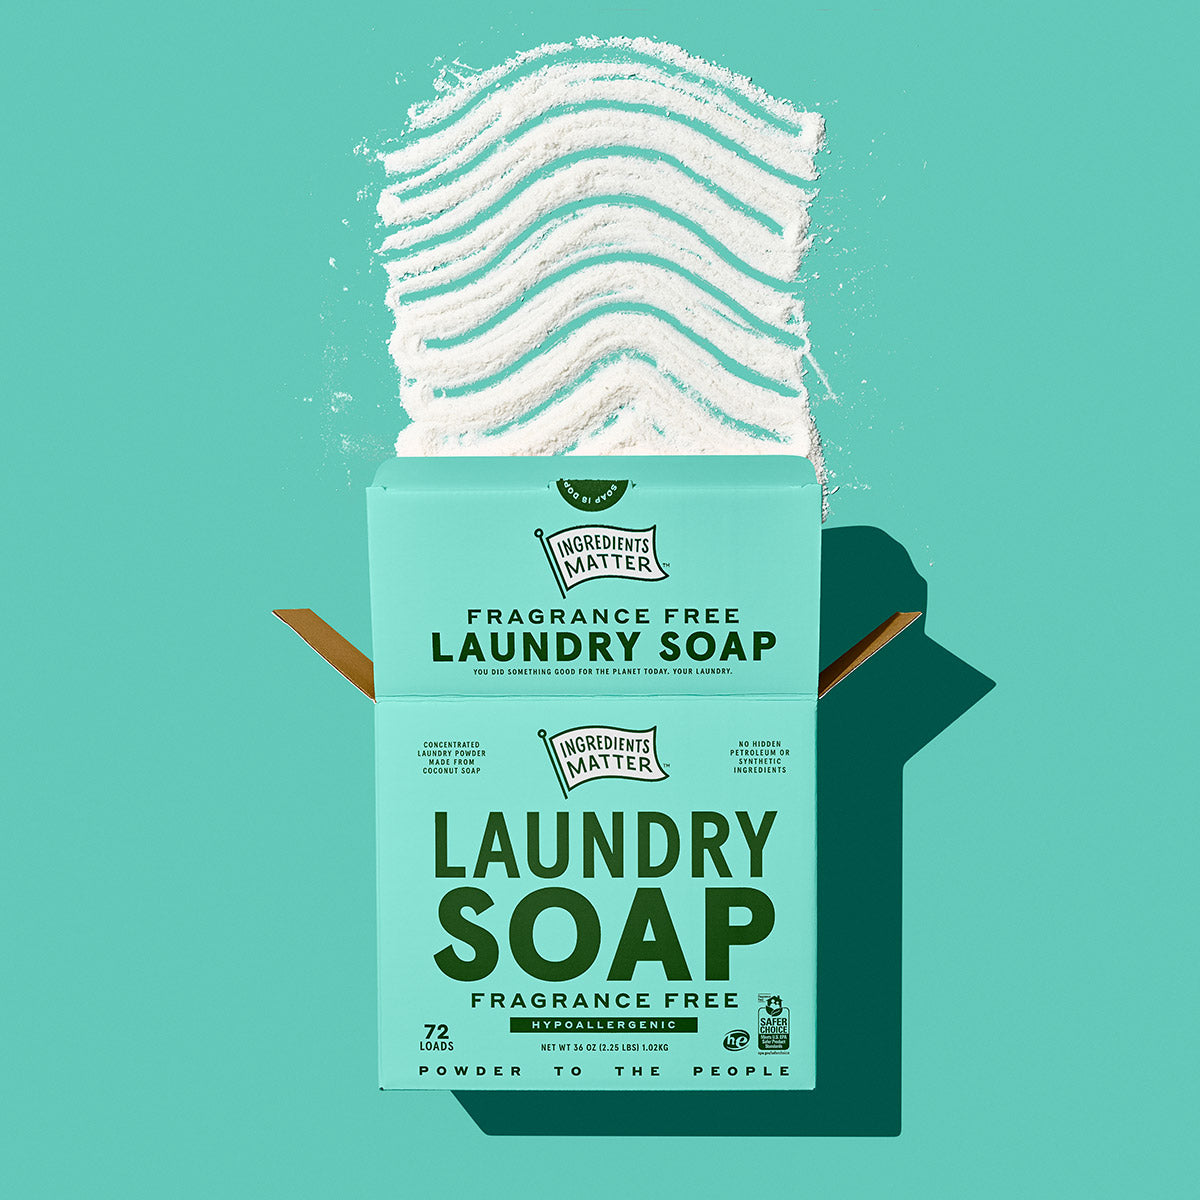 Fragrance free hypoallergenic natural laundry soap.